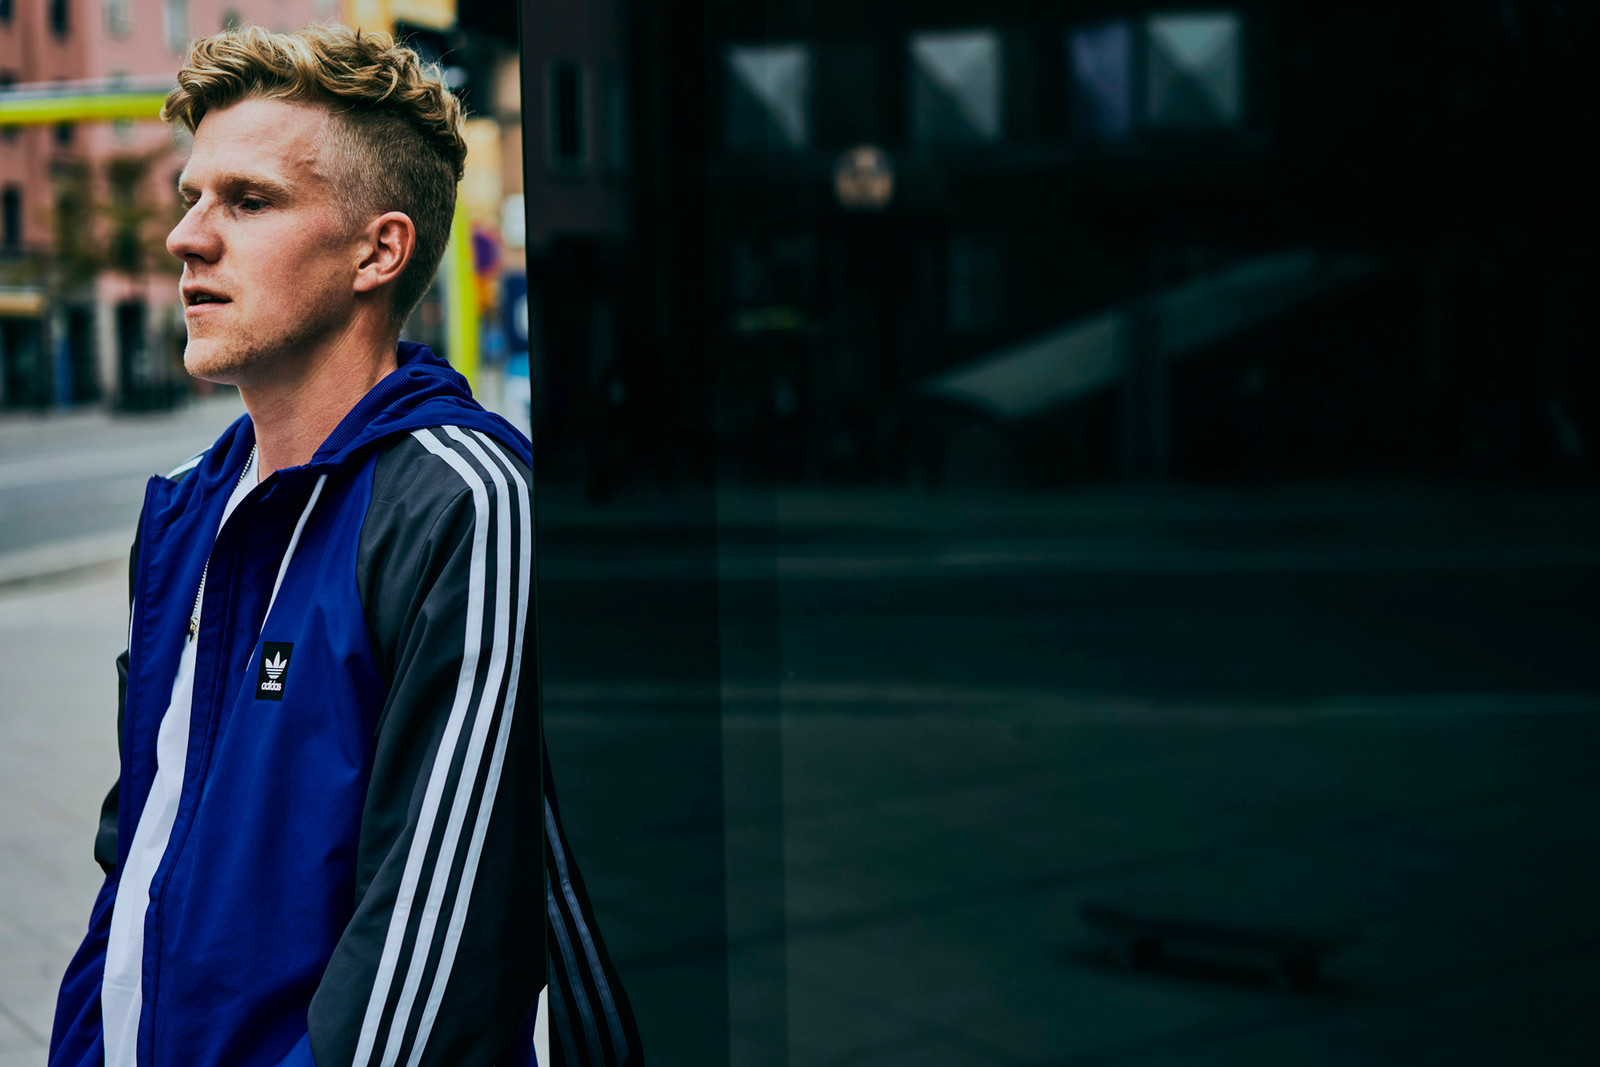 ADIDAS IDENTIFIES THE ESSENTIALS WITH INSLEY COLLECTION